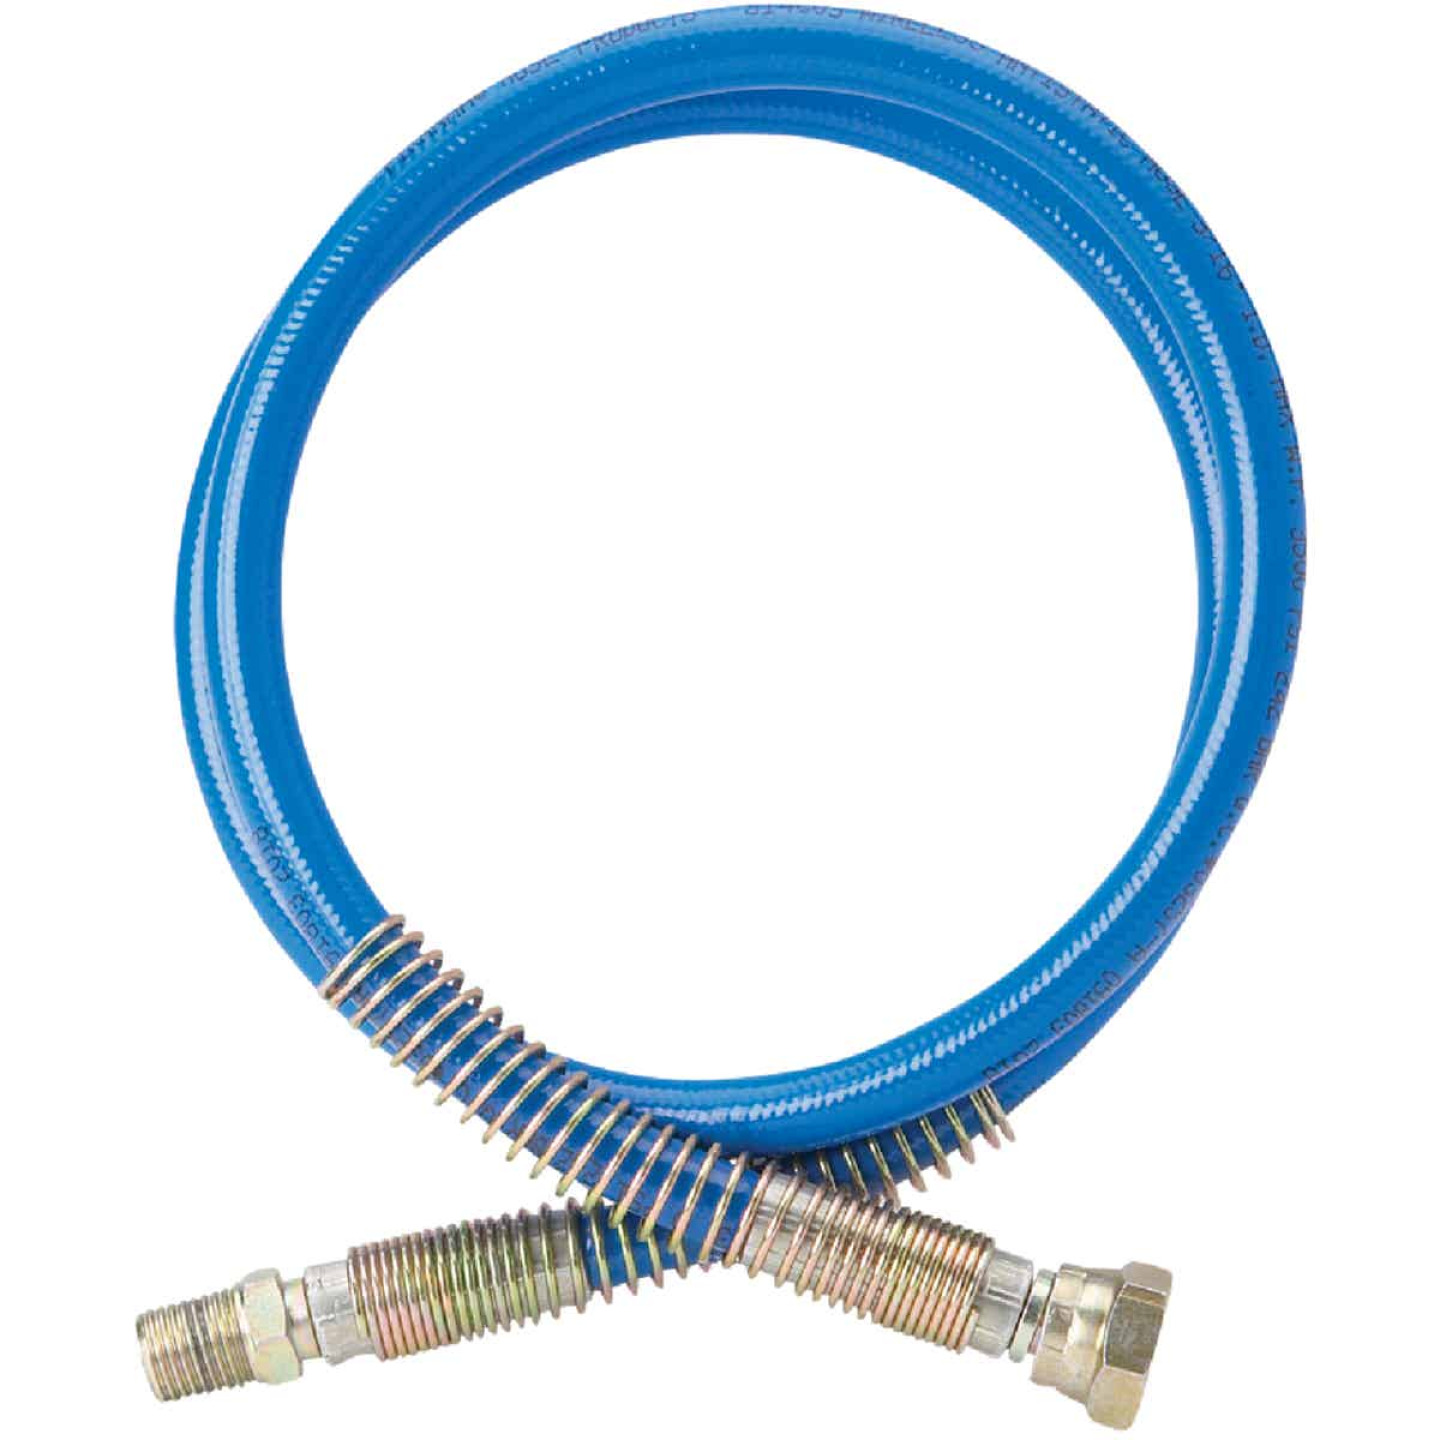 Graco Blue Max II 3/16 In. x 3 Ft. 3300 PSI Airless Whip Hose Image 1